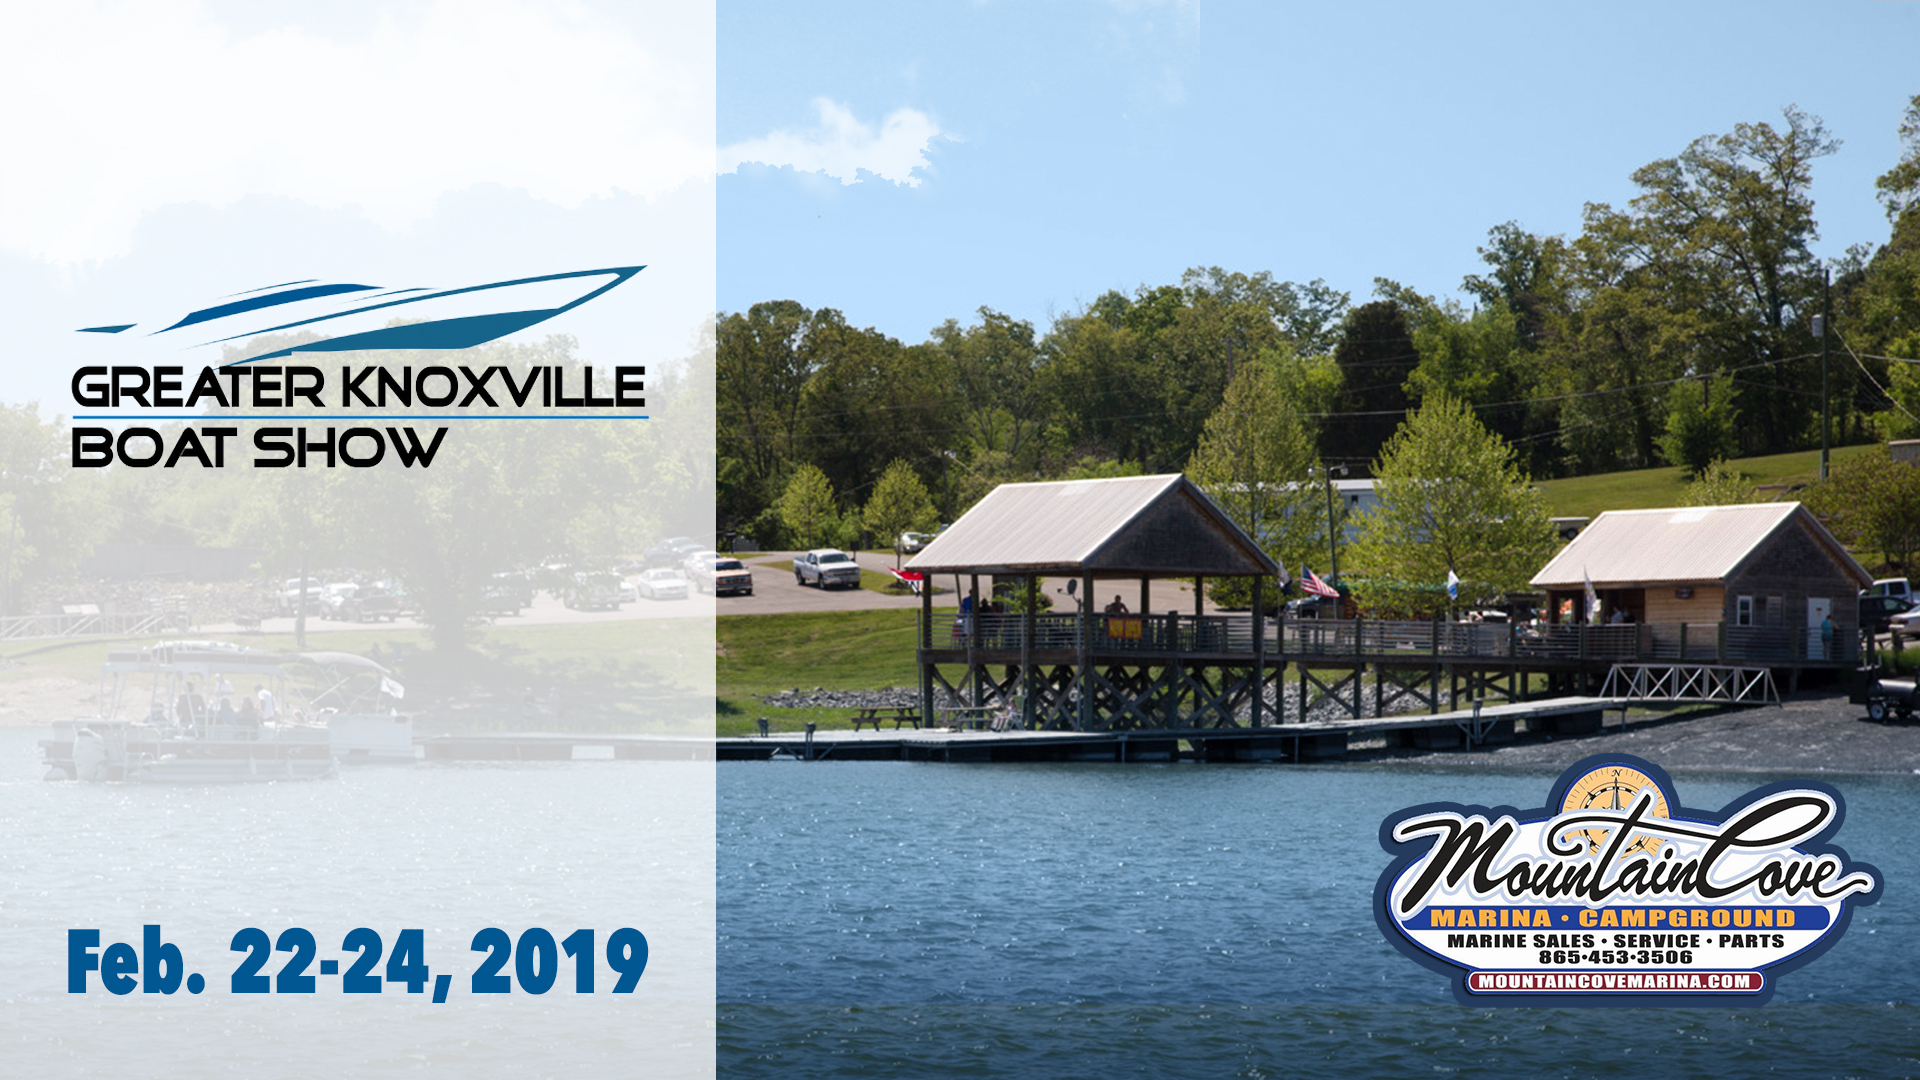 2019 Greater Knoxville Boat Show